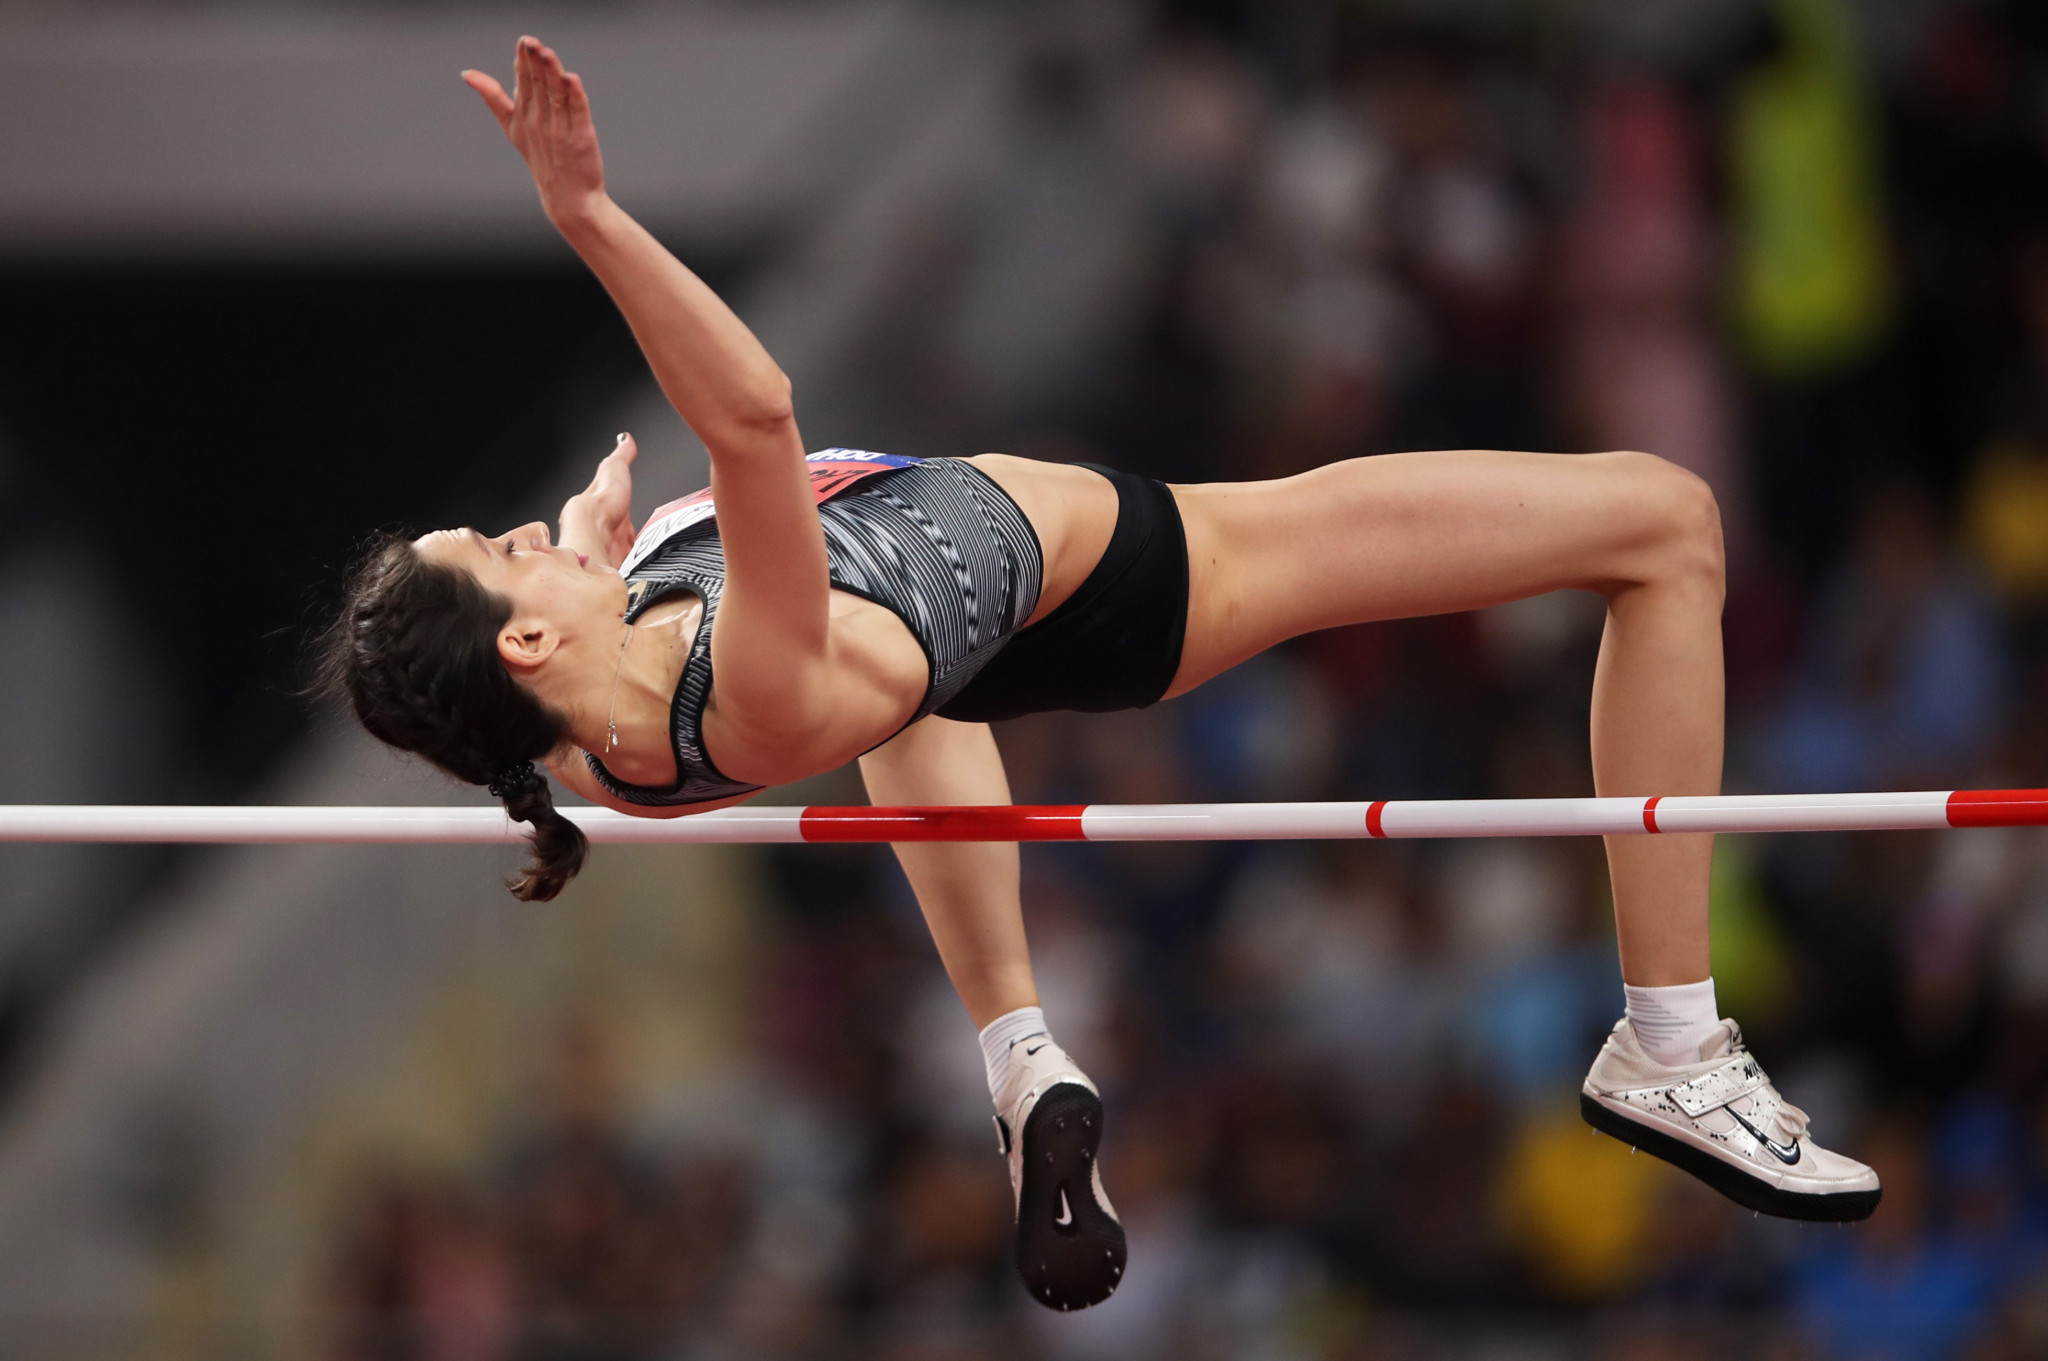 Russian high jumper Mariya Lasitskene once again finds her career on hold because of the Russian doping crisis ©Getty Images